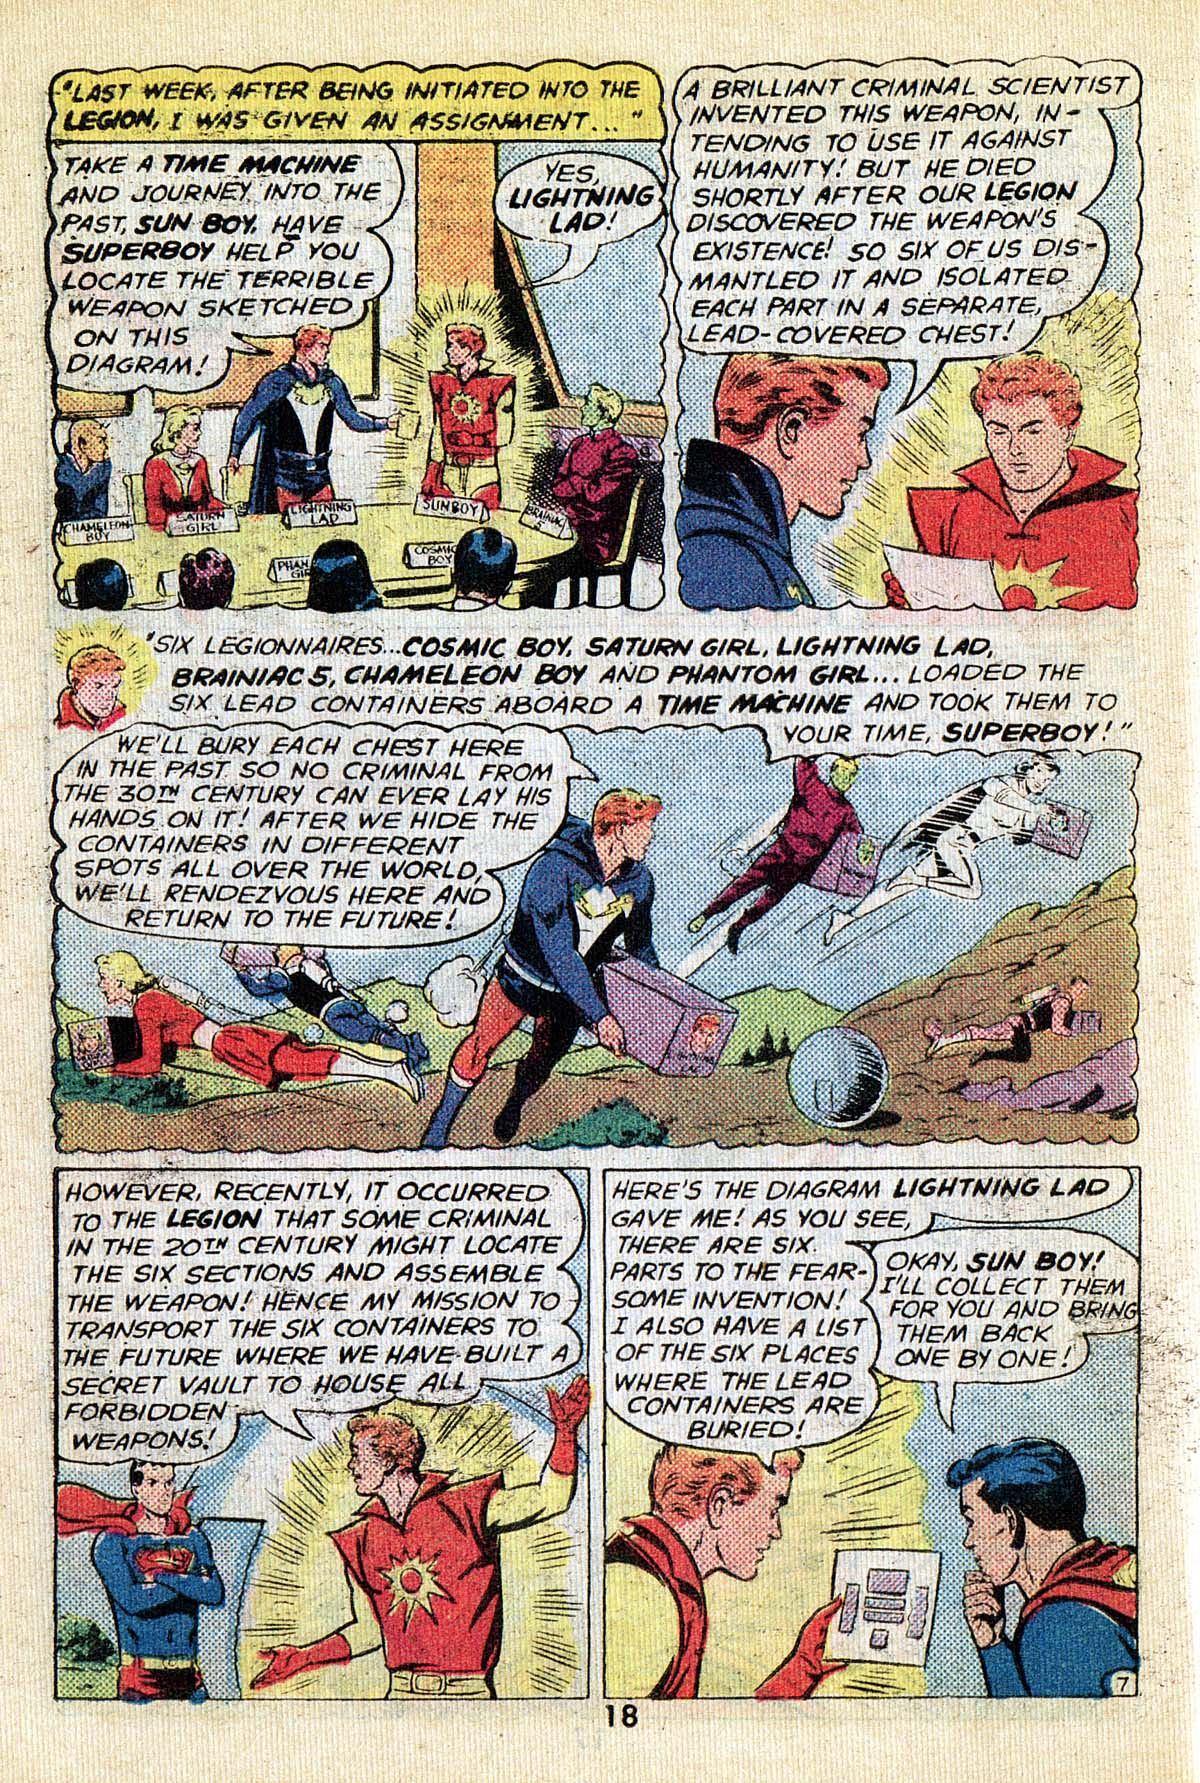 Read online Adventure Comics (1938) comic -  Issue #495 - 18